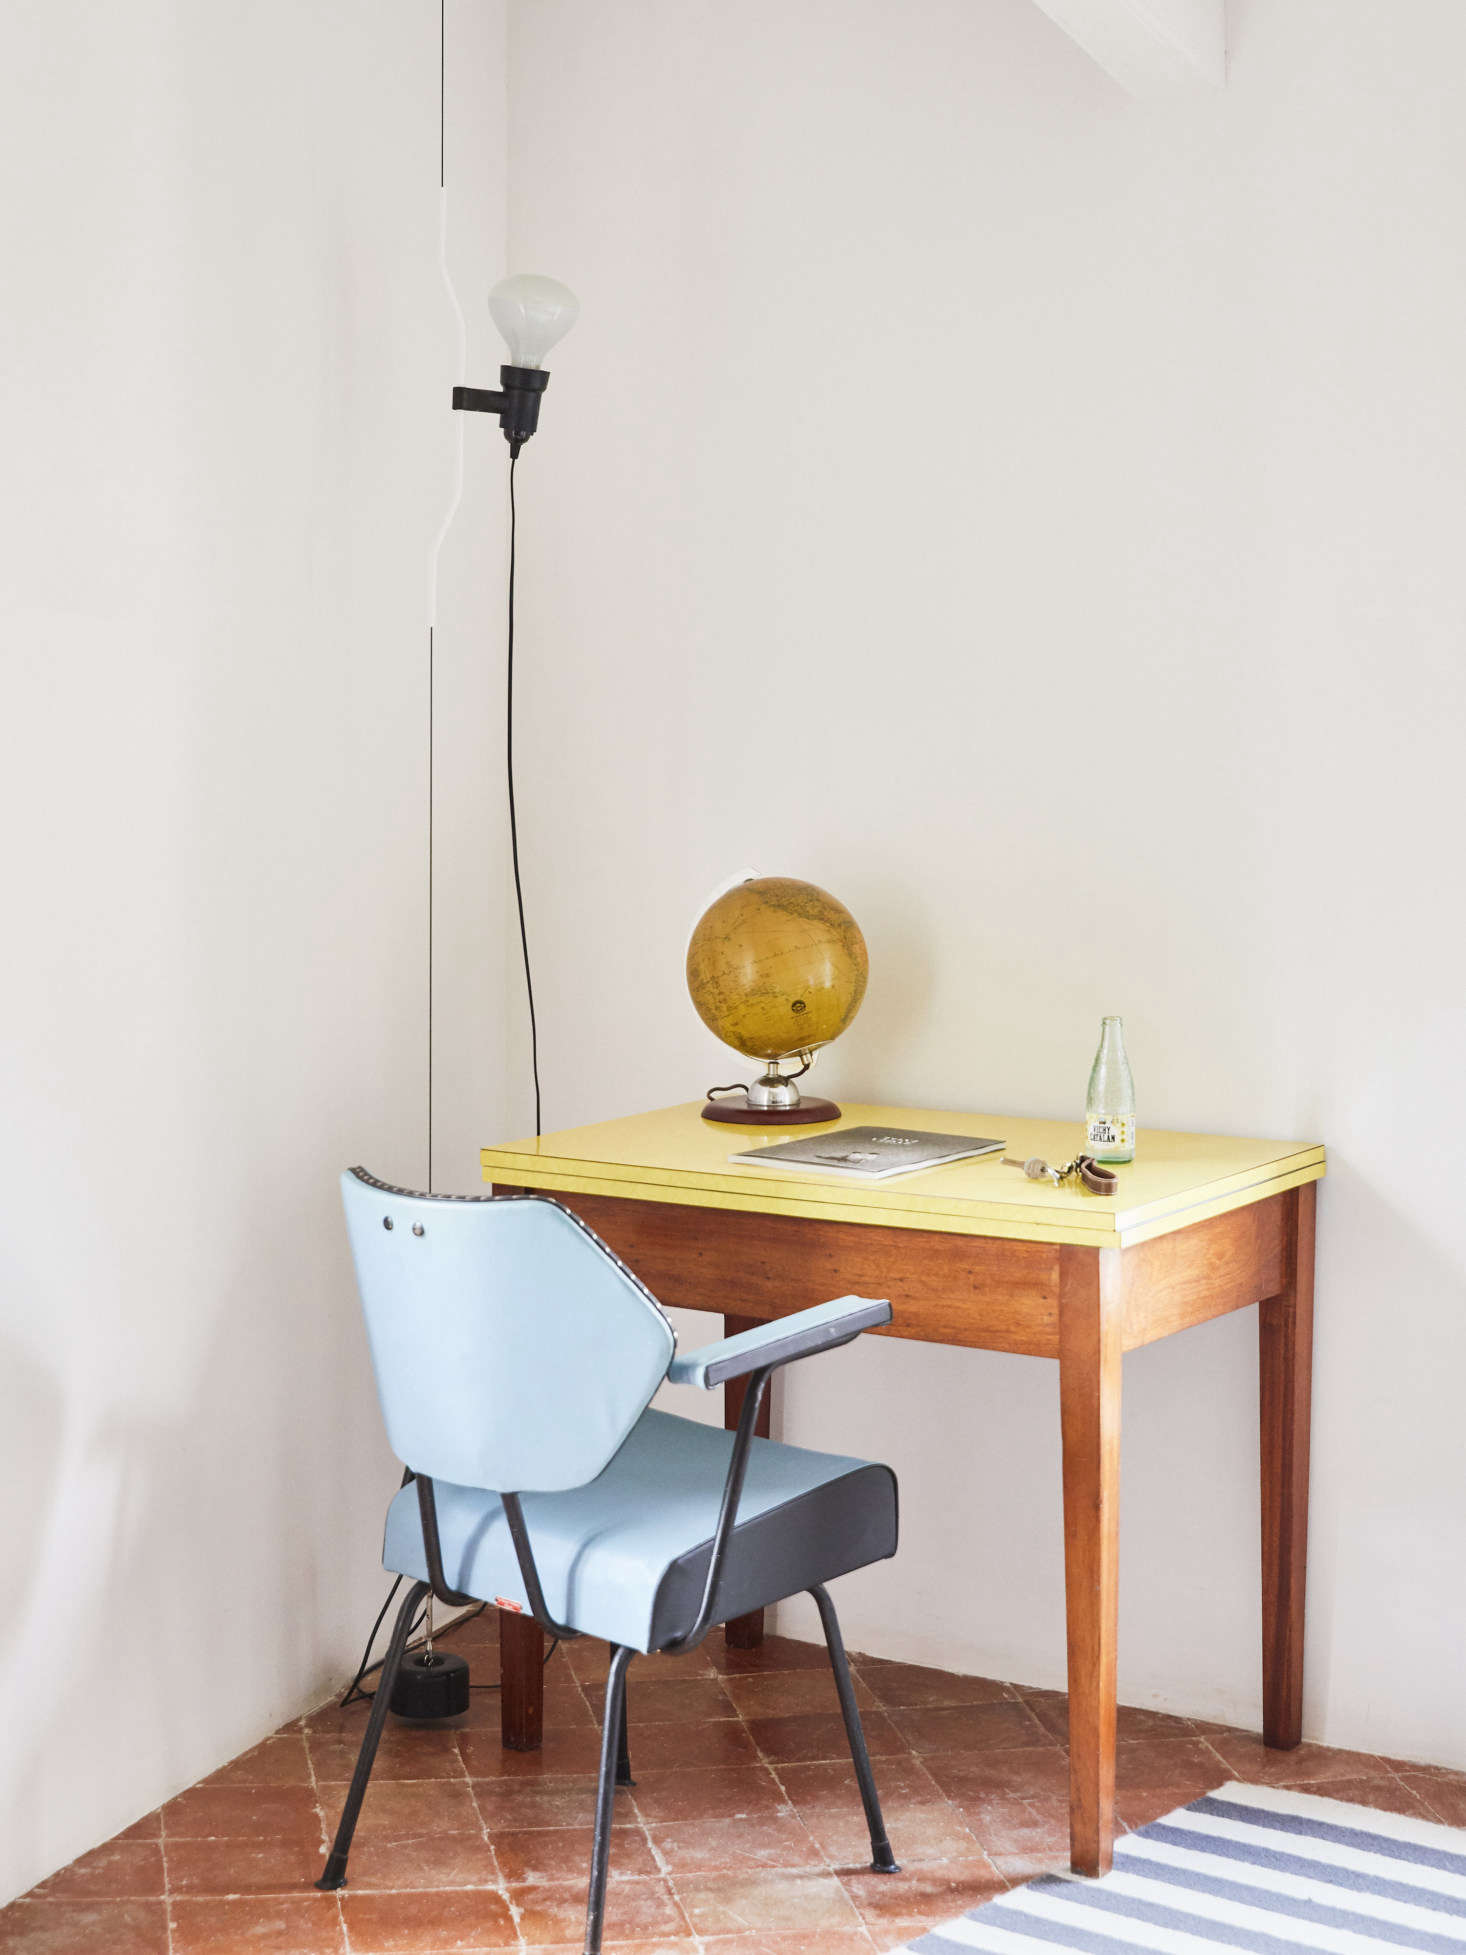 The desk is a vintage 60's piece from Lannion in Brittany, and the chair, too, is vintage, sourced from Amapola Antiques in Madrid. The lamp is the Flos Parentesi Floor Lamp in white.